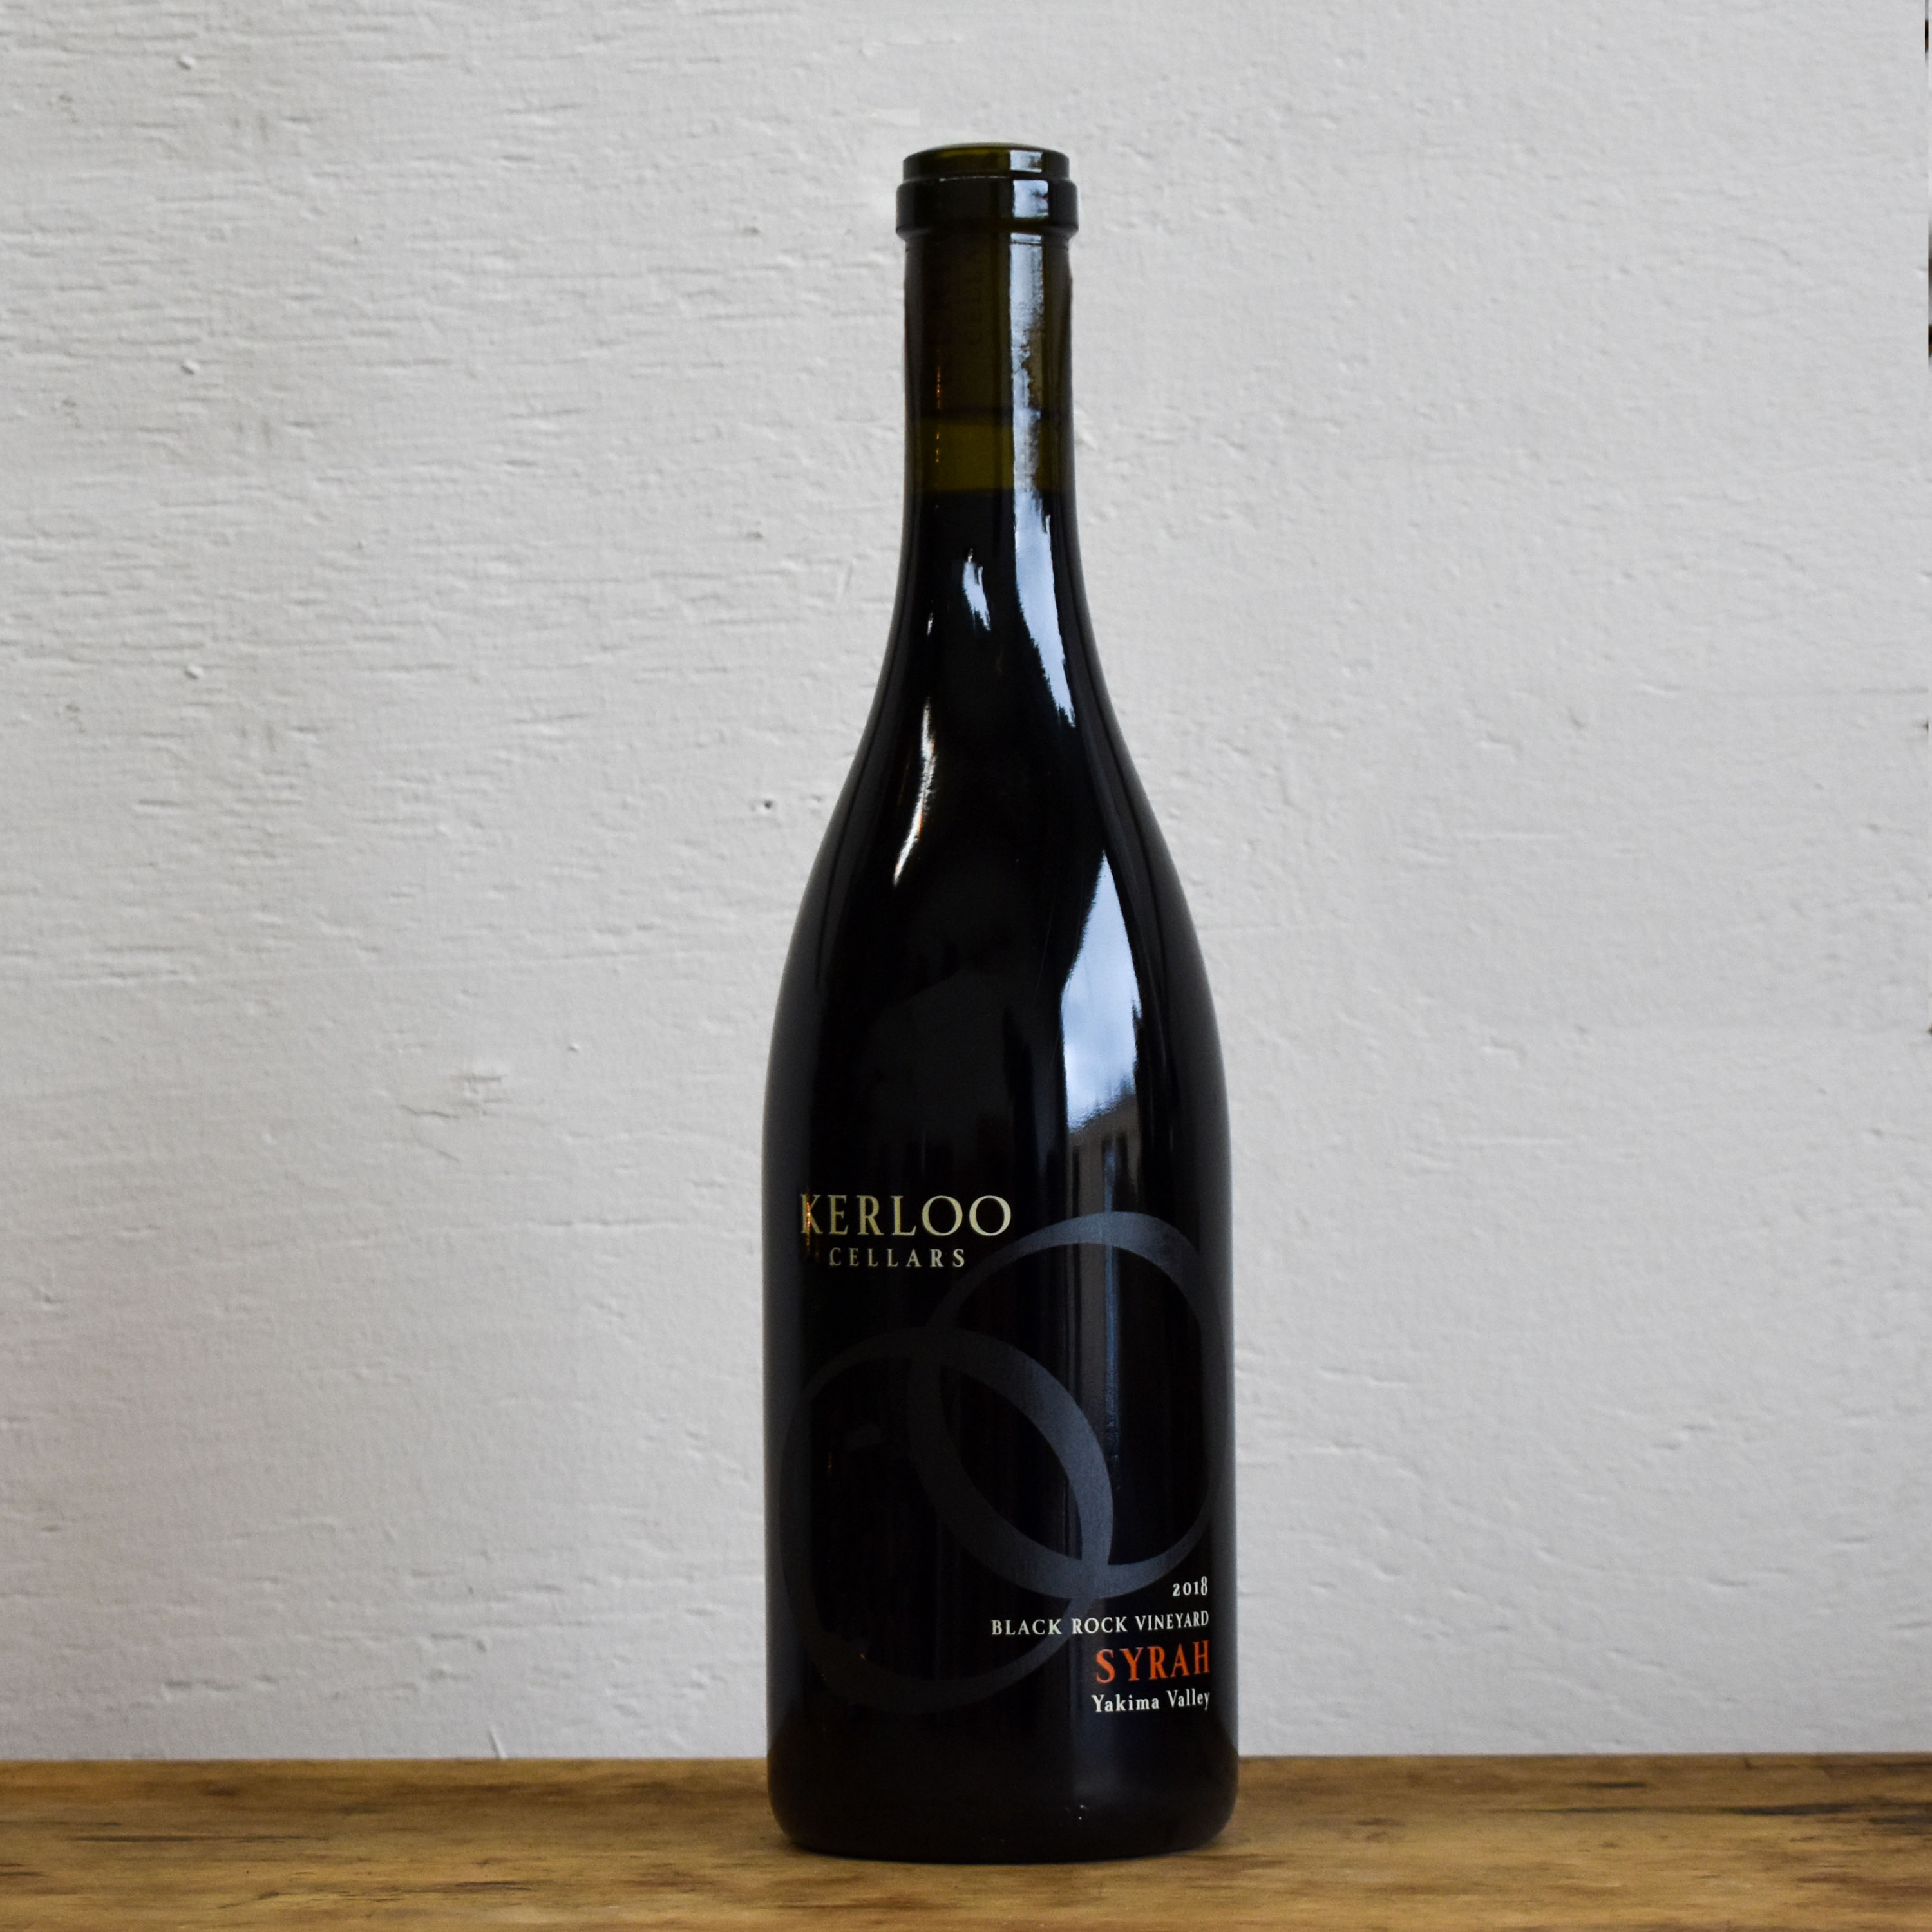 Kerloo Blackrock Syrah 18 KerlooBkRkSyrah18 - Crunchy Red Fruit